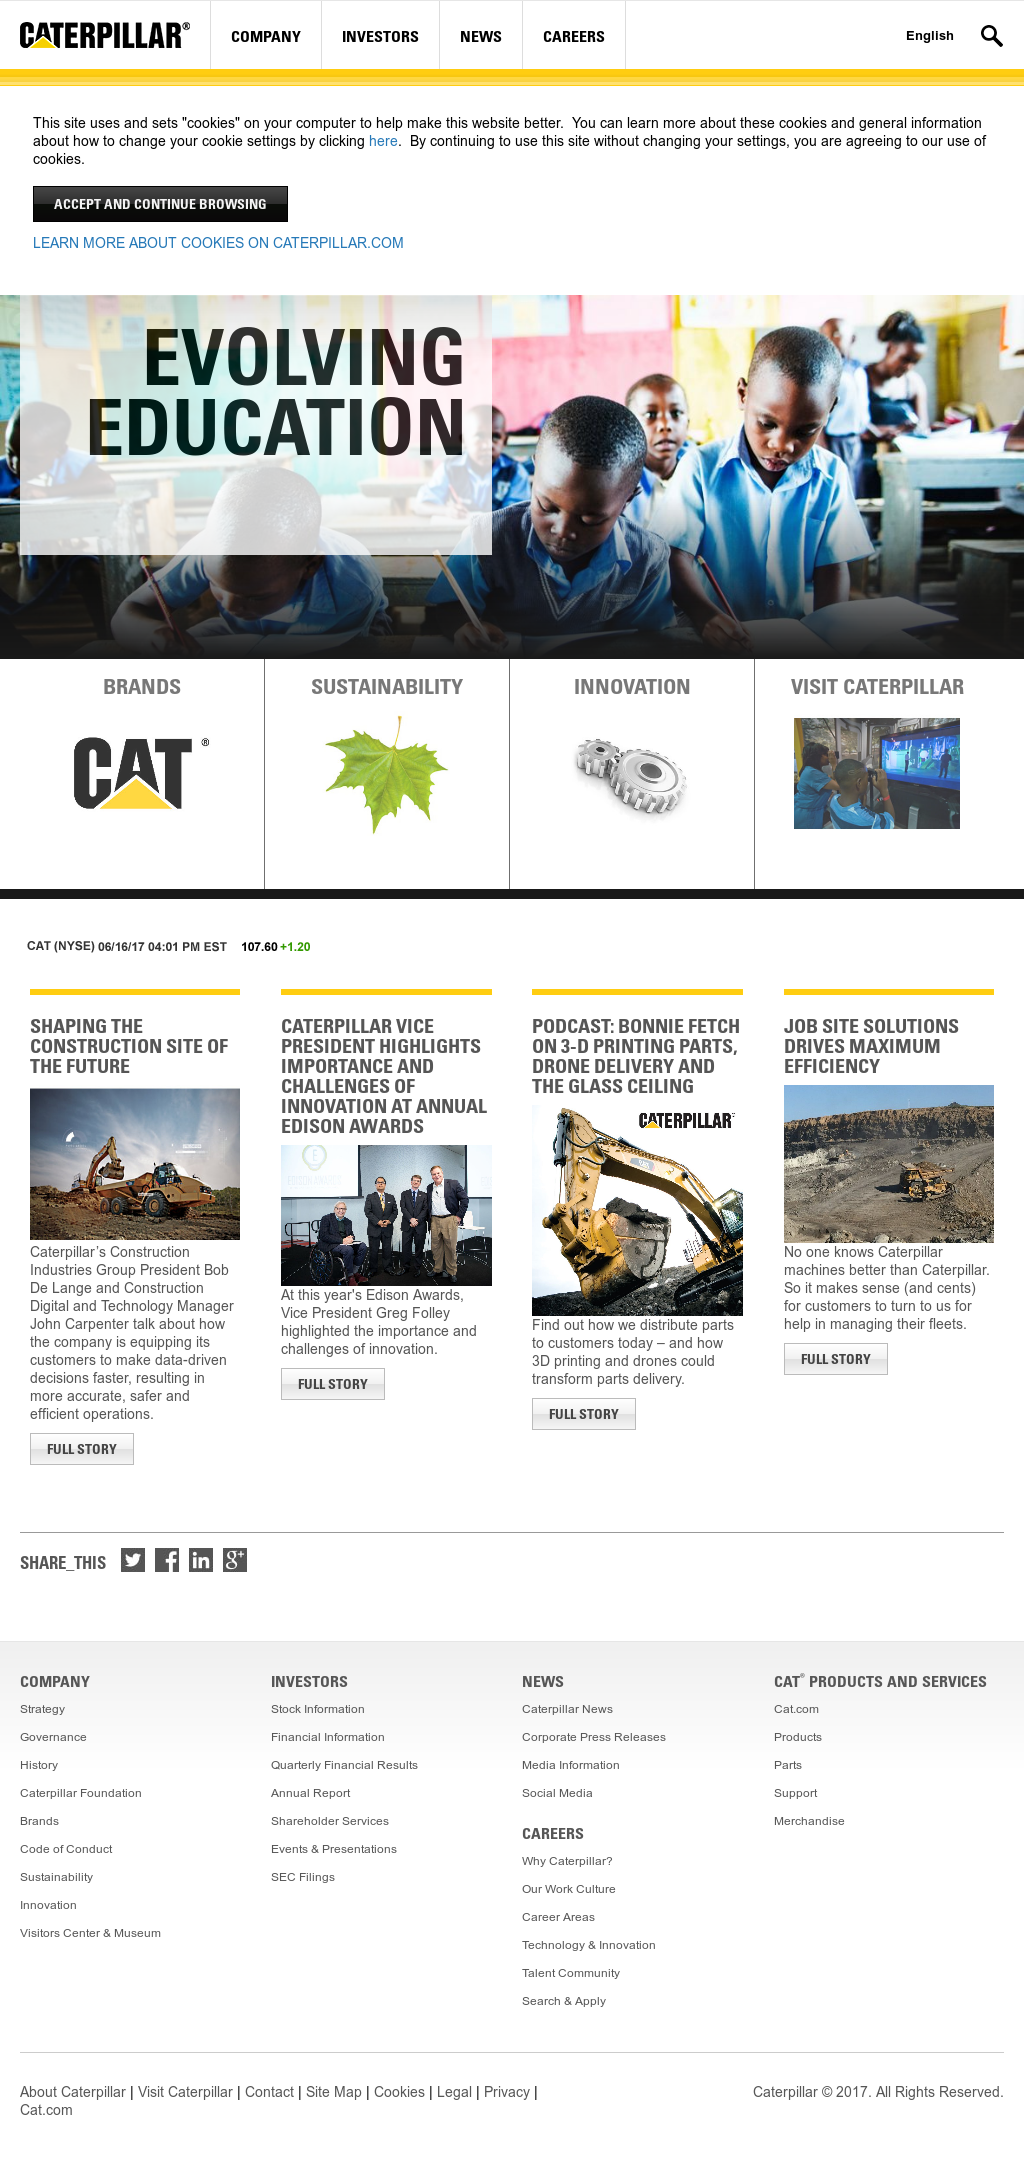 Caterpillar Competitors, Revenue and Employees - Owler